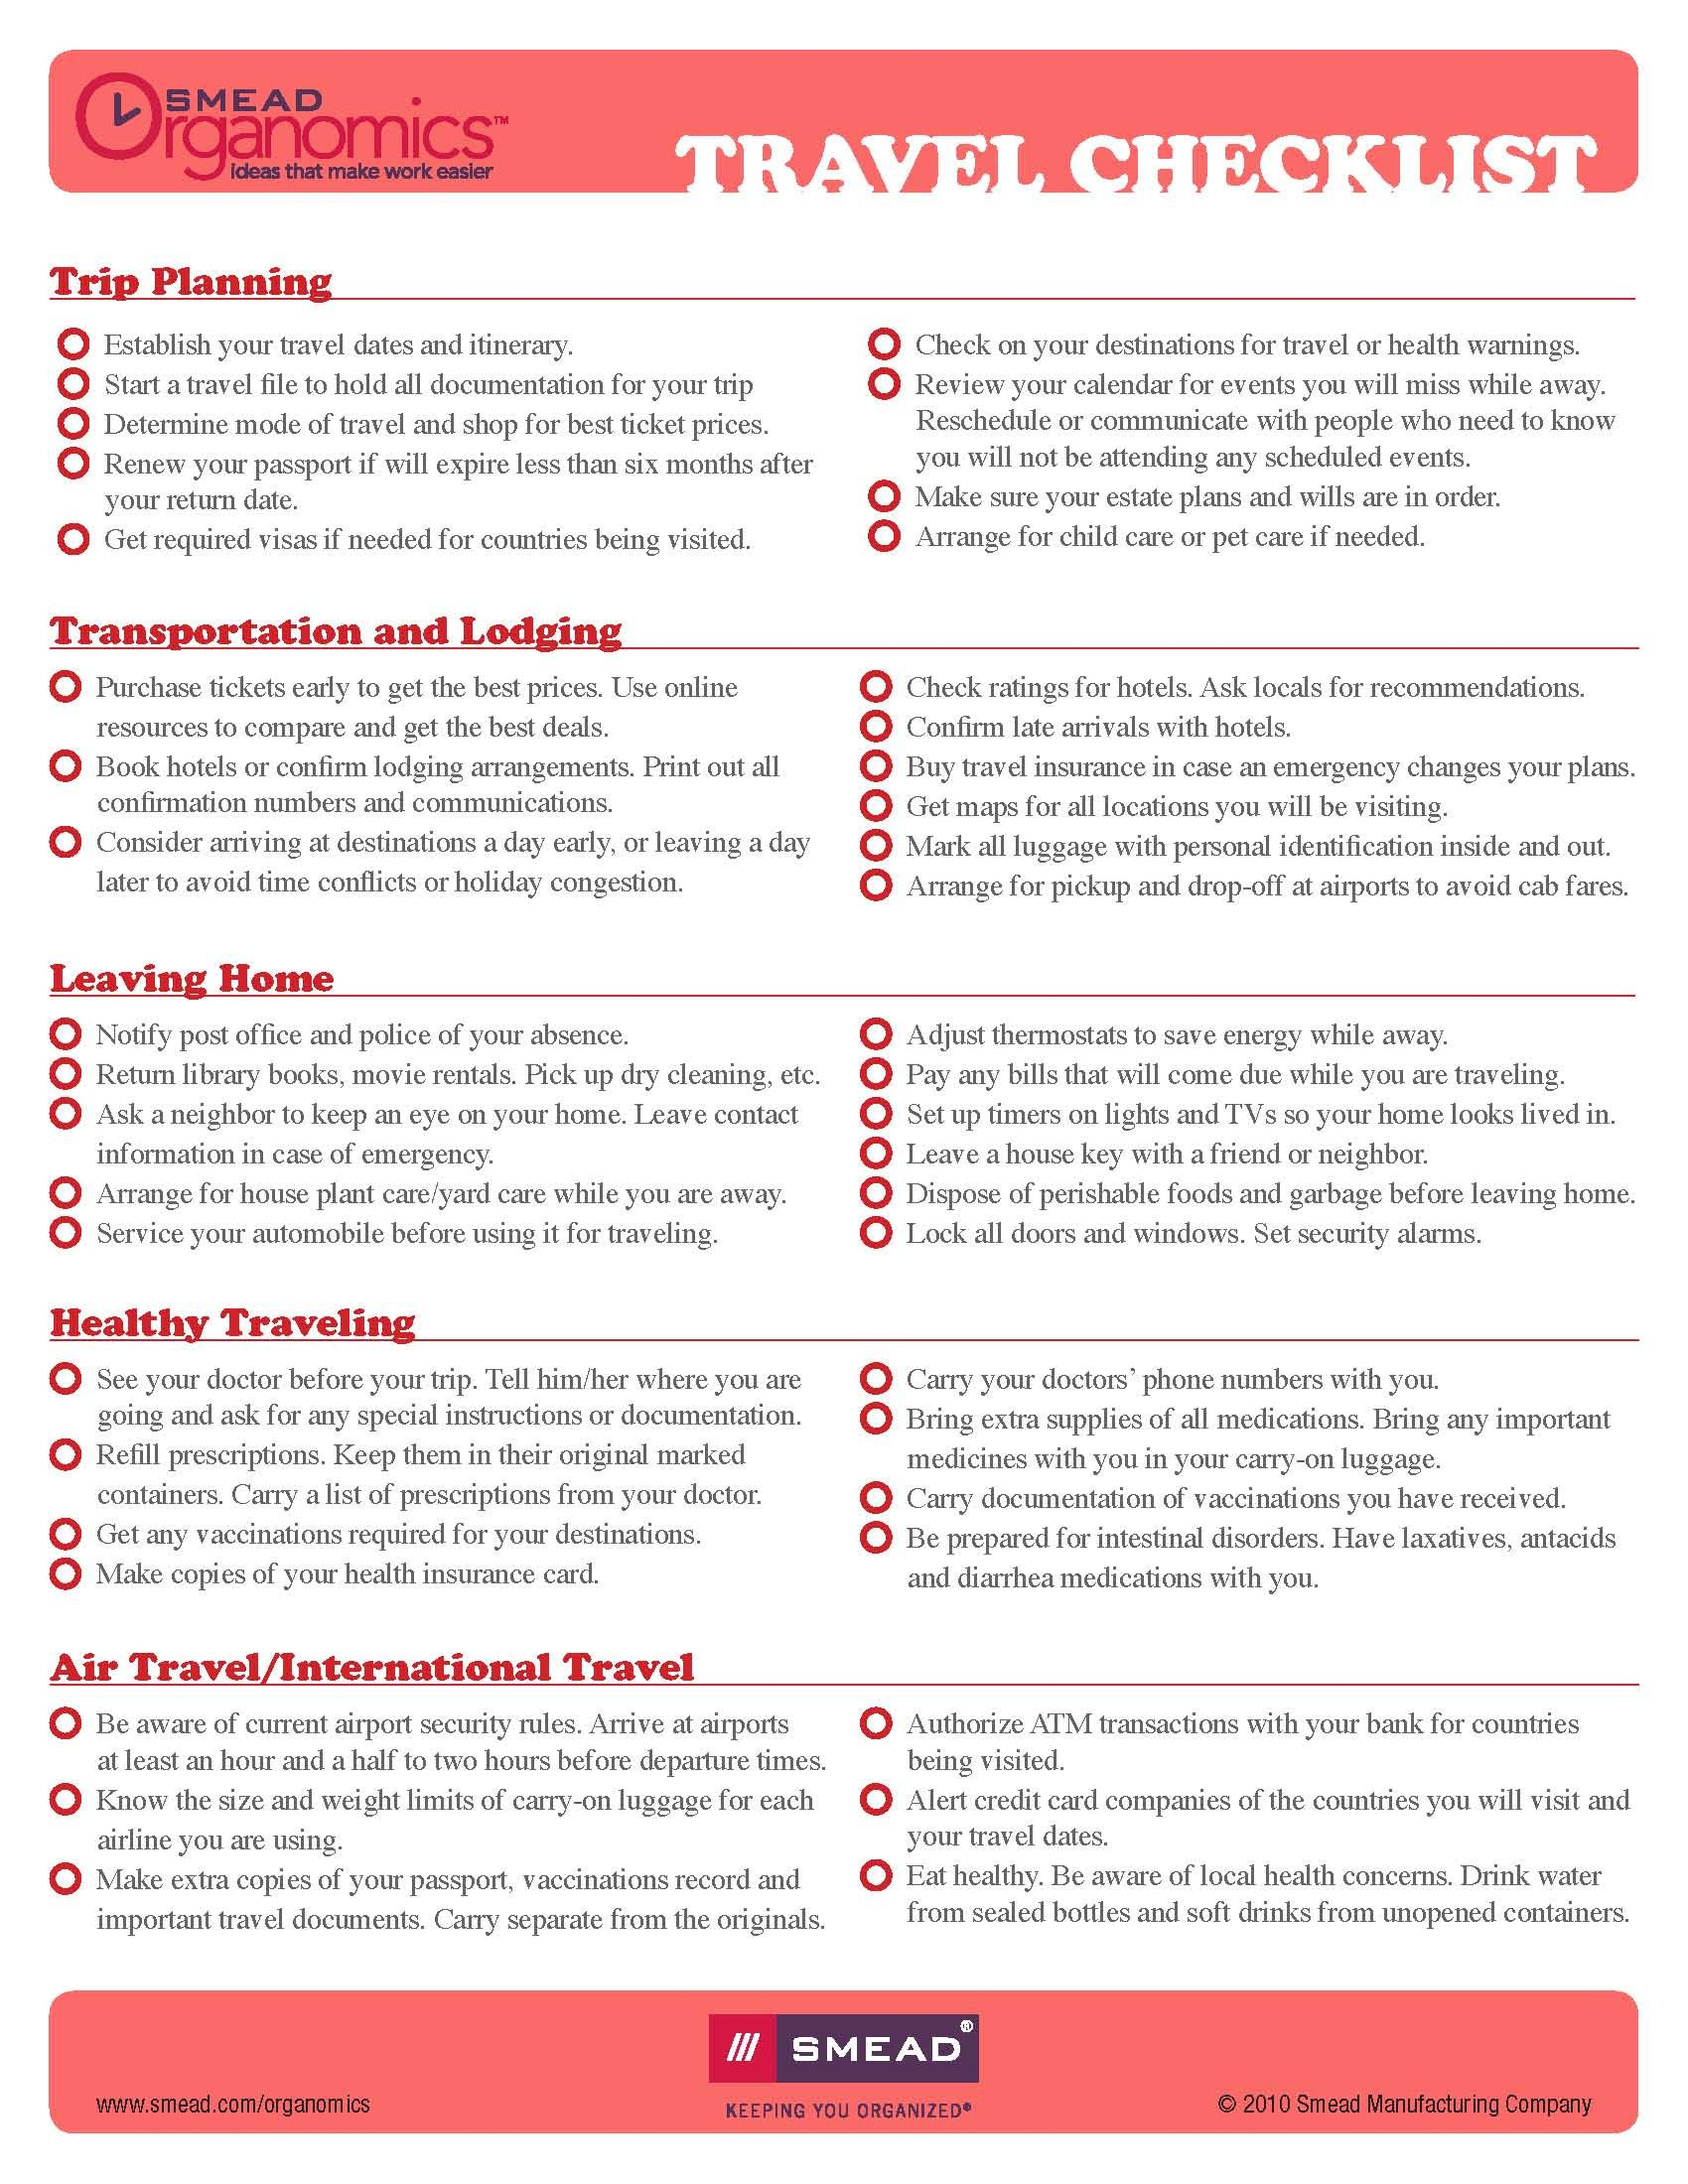 Here Is A Trip Planning Checklist To Ensure Smooth Travels Www